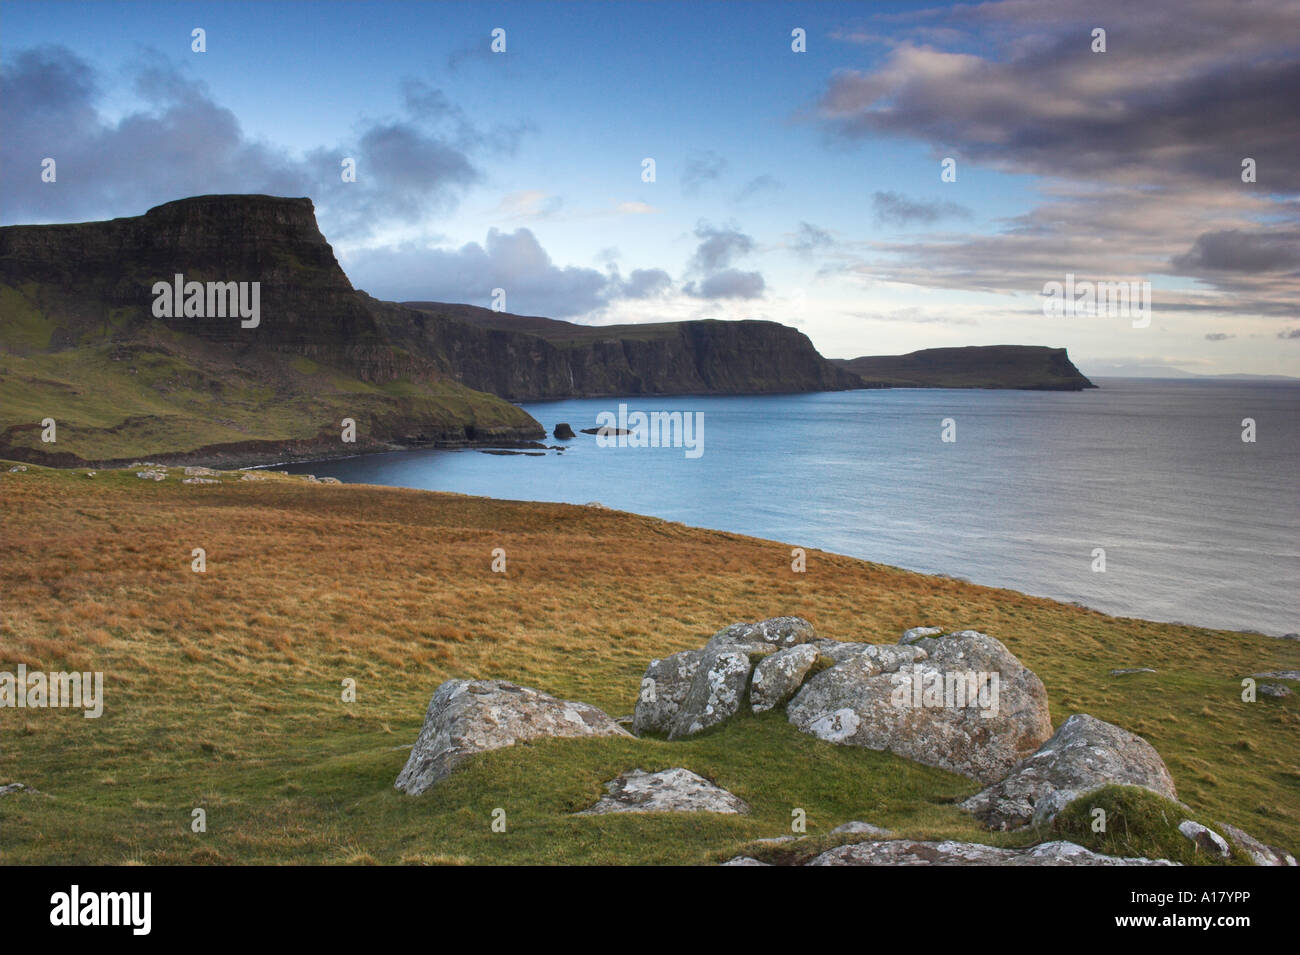 horizontal landscape photo of sunset at moonen bay near neist point on the isle of sky in scotland Stock Photo